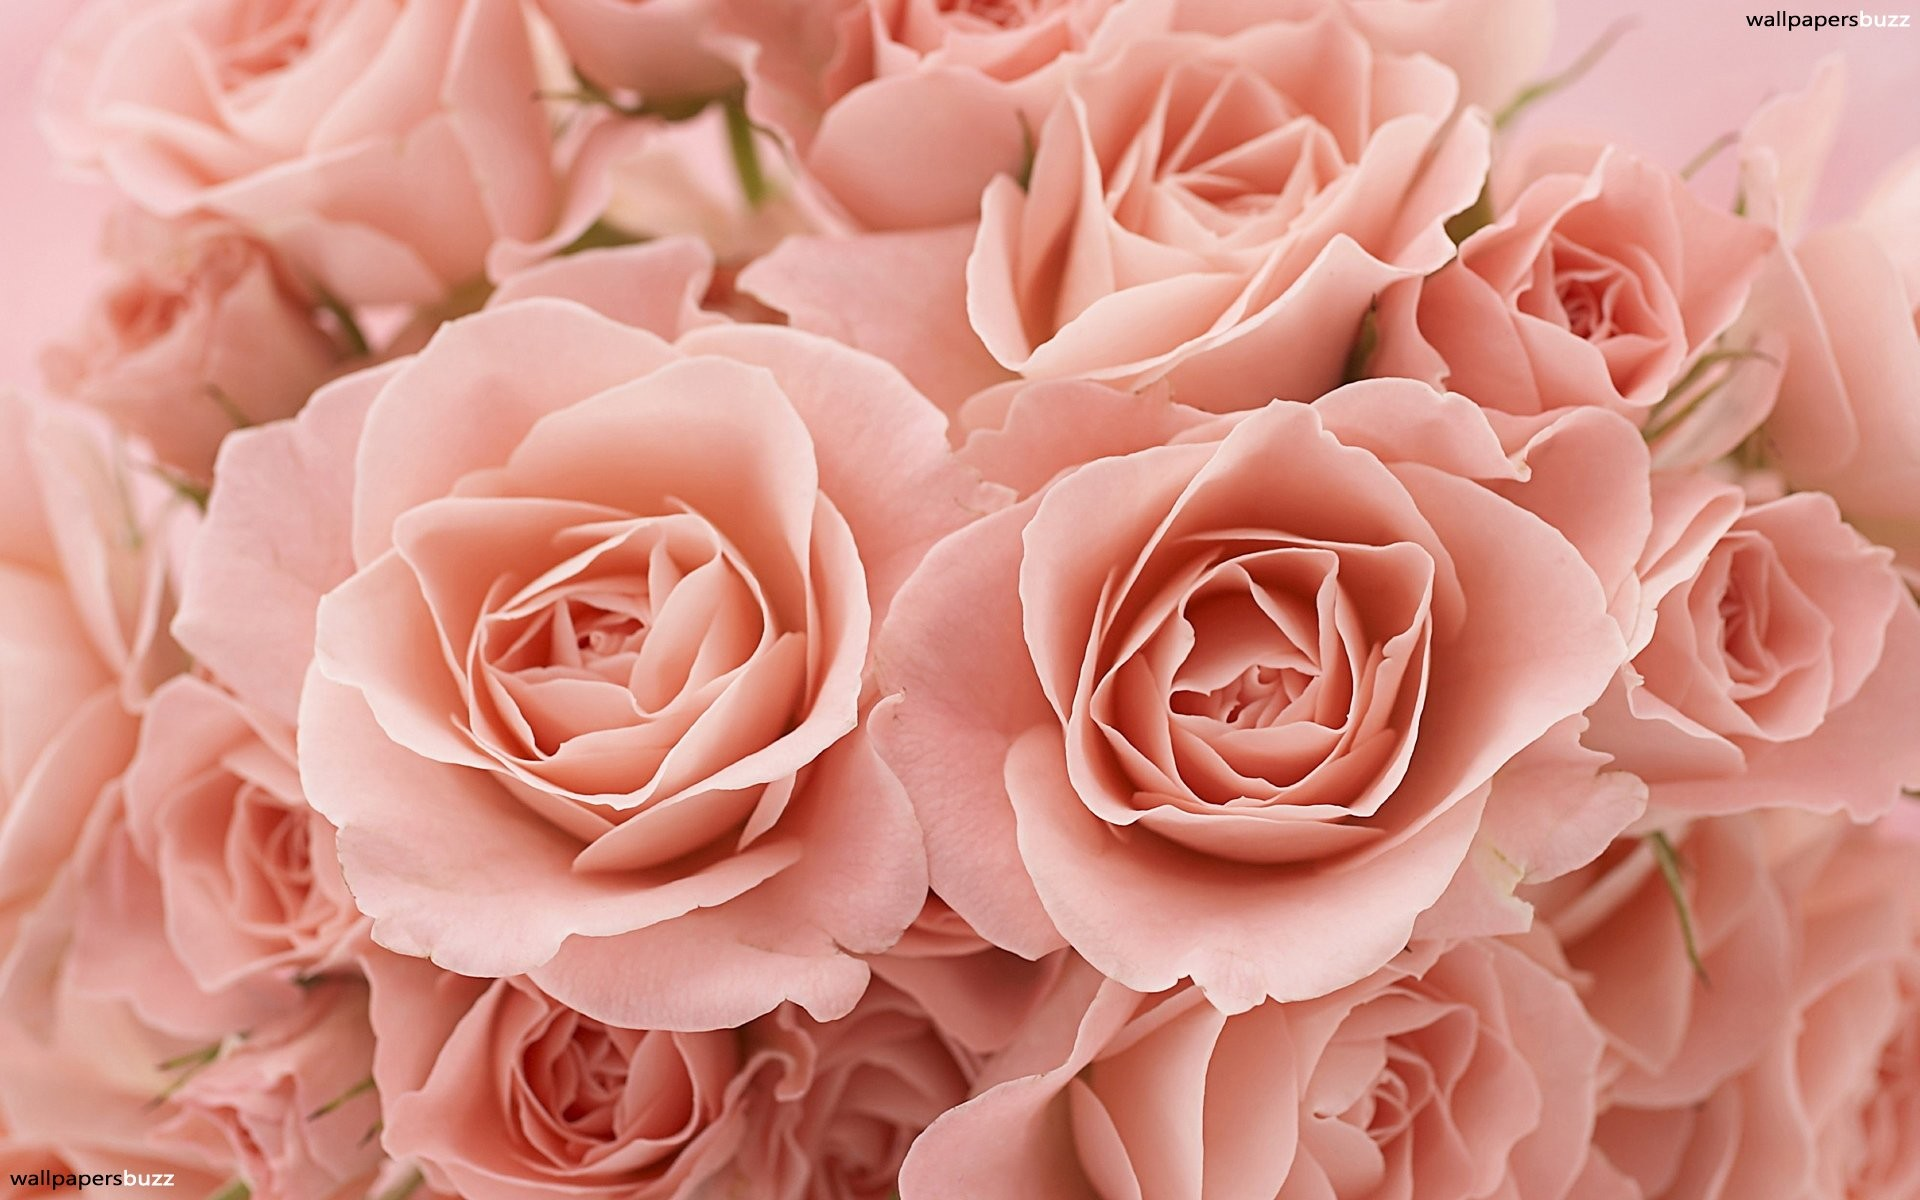 Res: 1920x1200, beautiful pink roses are depicted on this wallpaper queen of